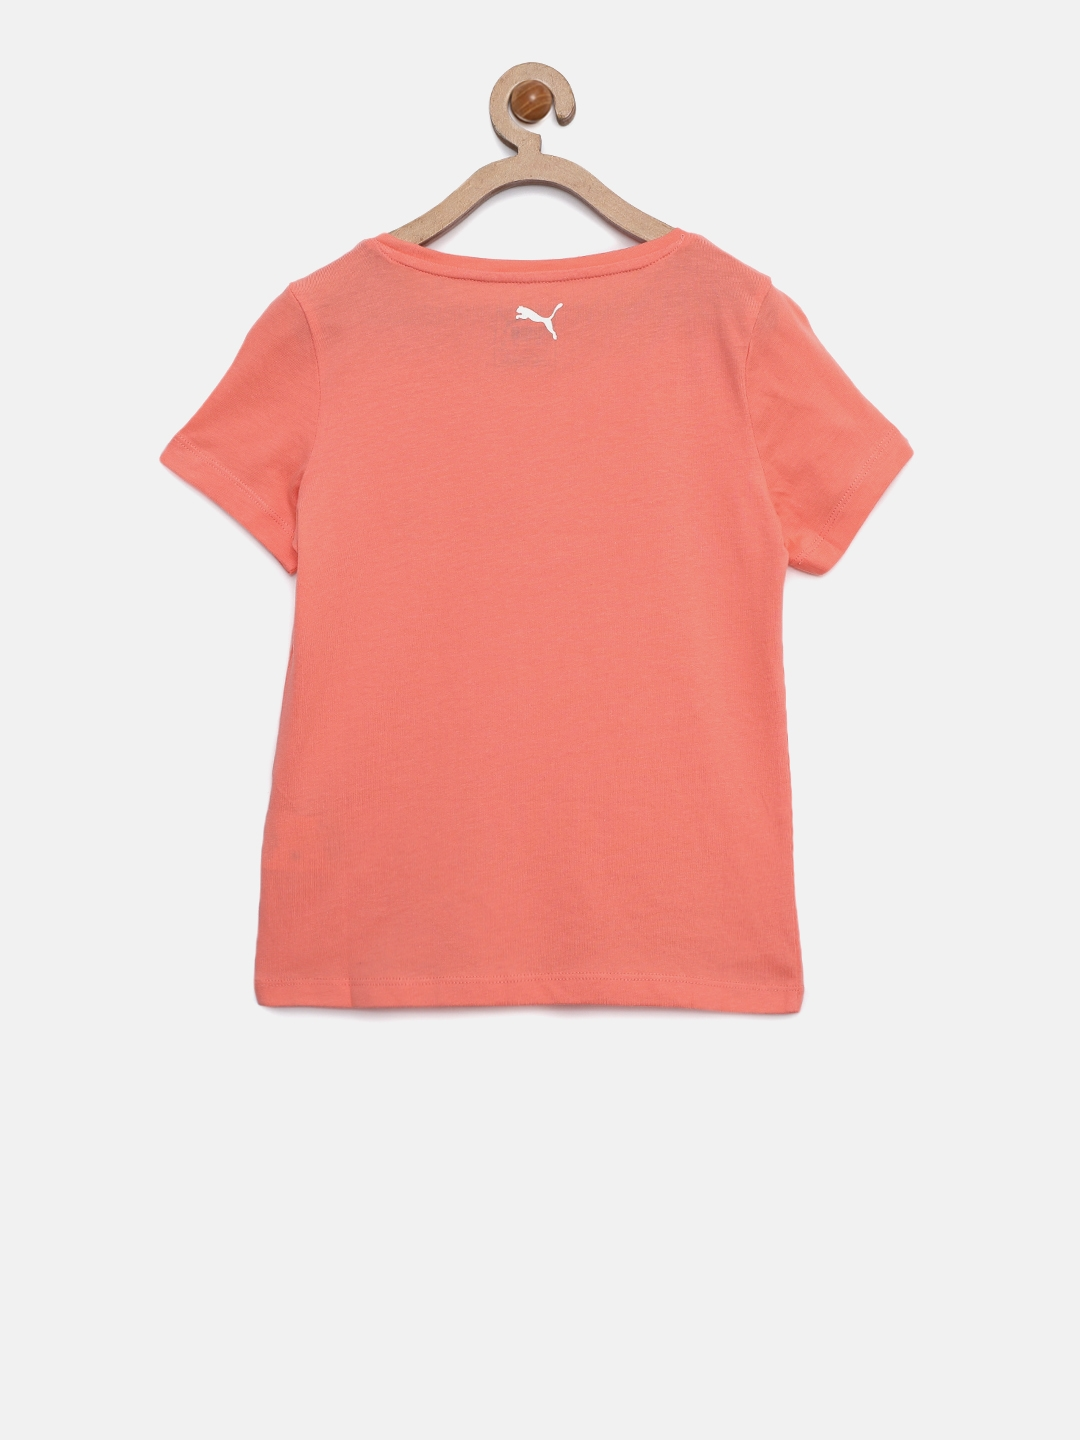 ae8a2f39ab81 Buy Puma Girls Peach Coloured Style Graphic Printed Round Neck T ...